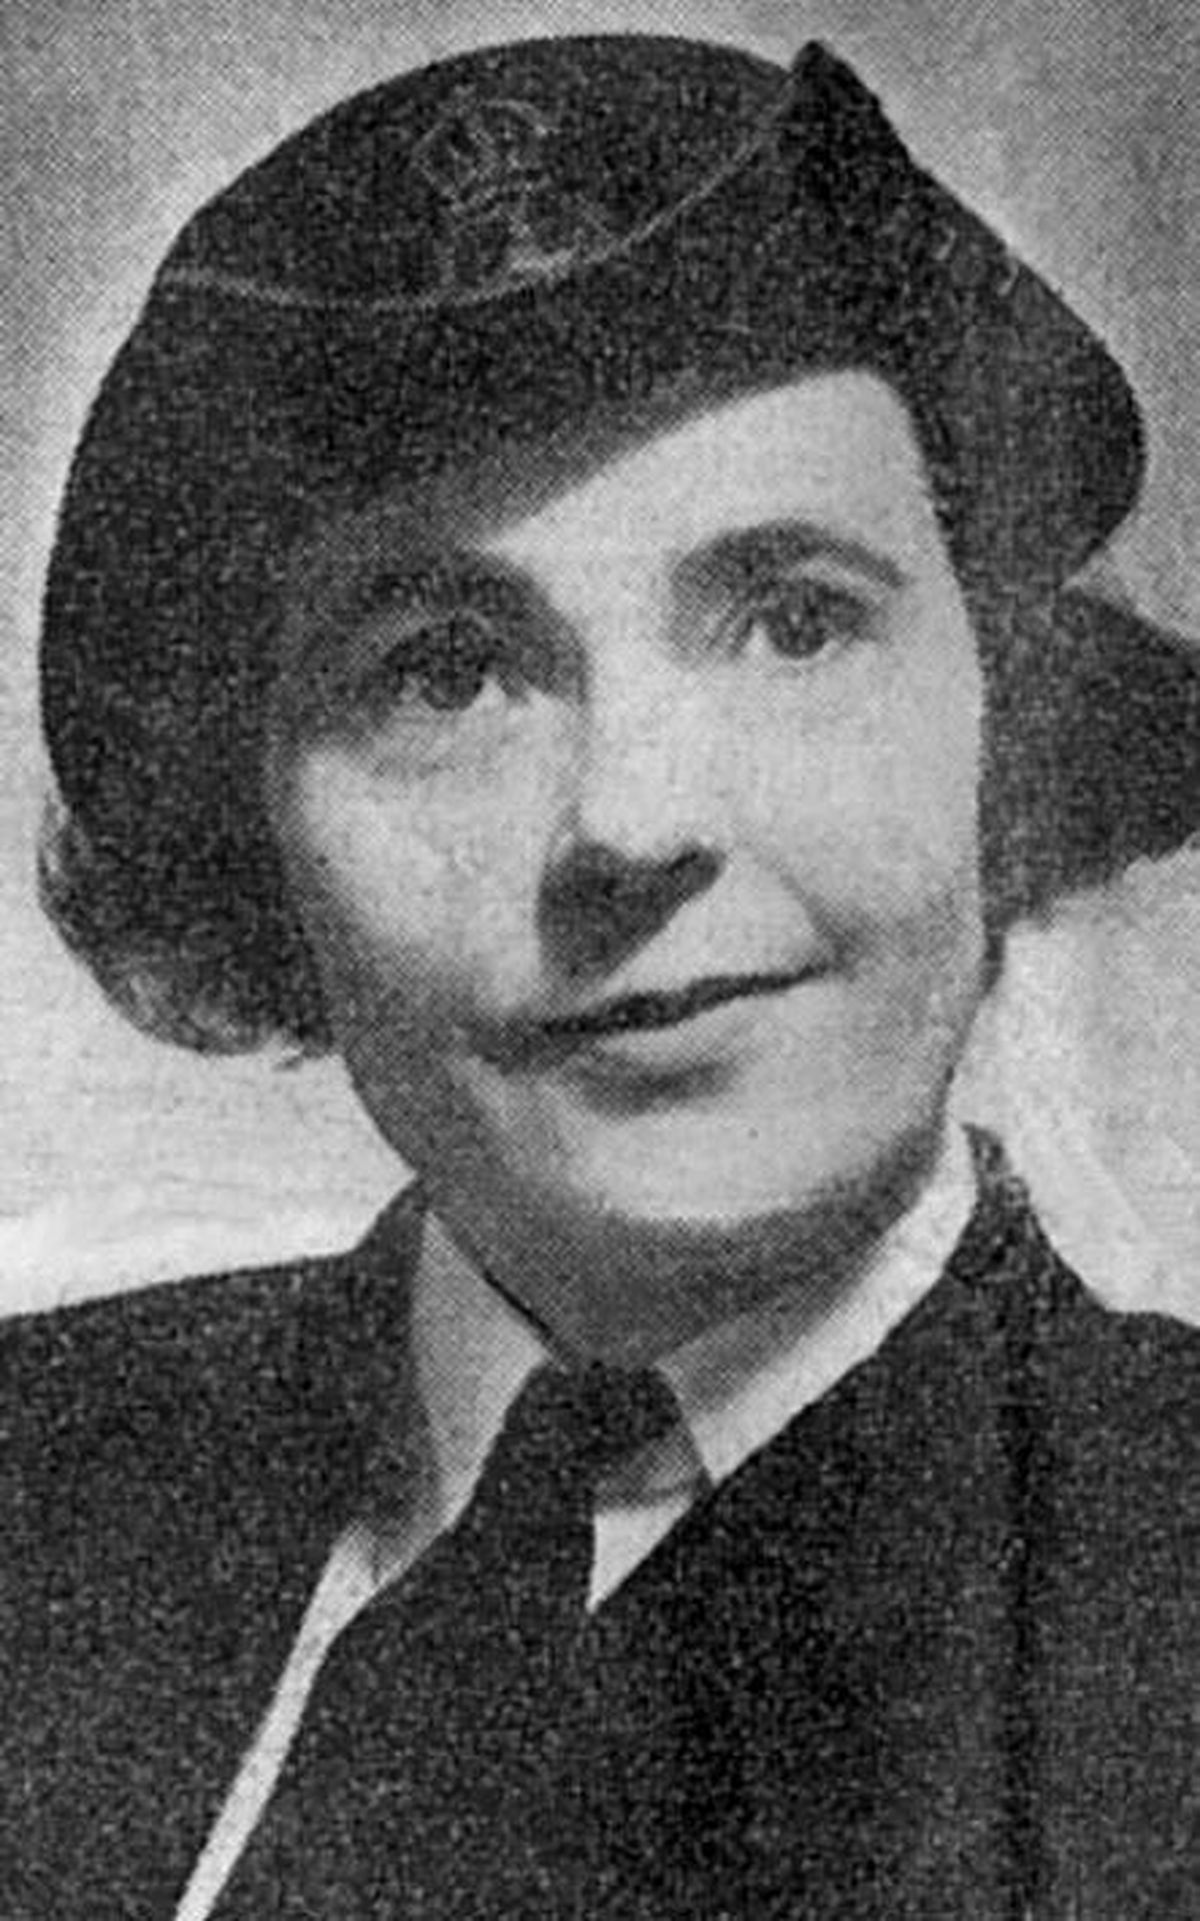 Edith Pargeter served in the wartime Wrens